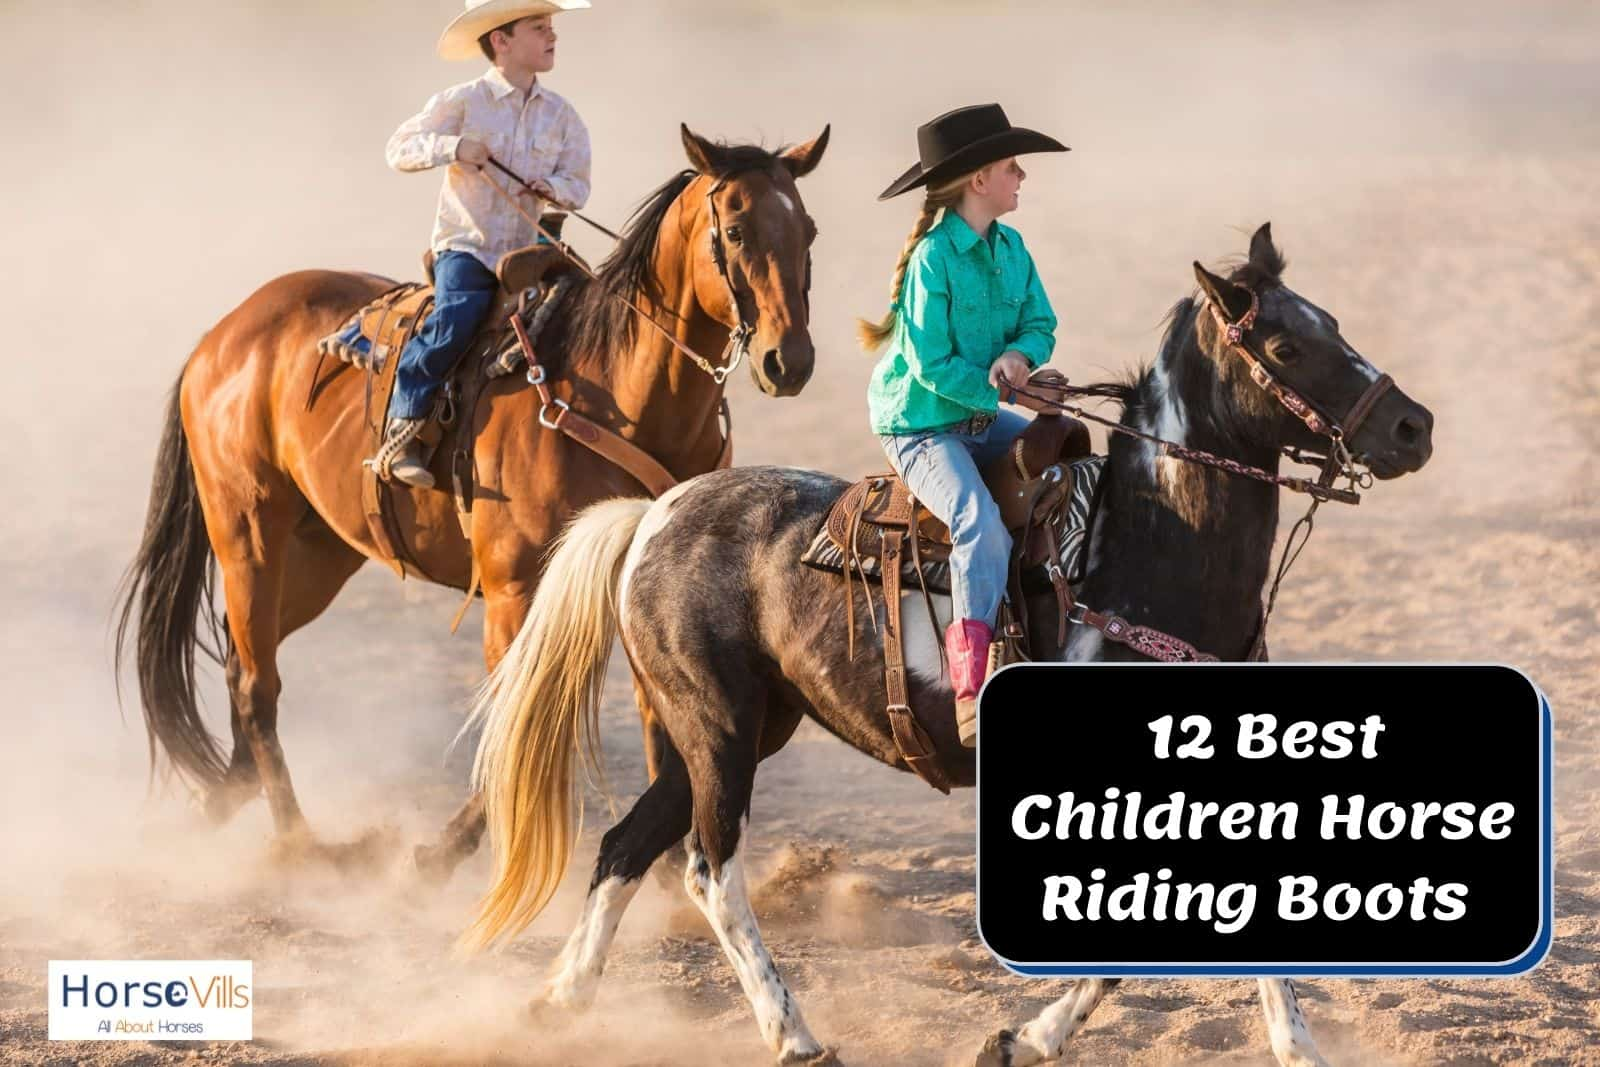 two kids riding a horse and wearing children horse riding boots